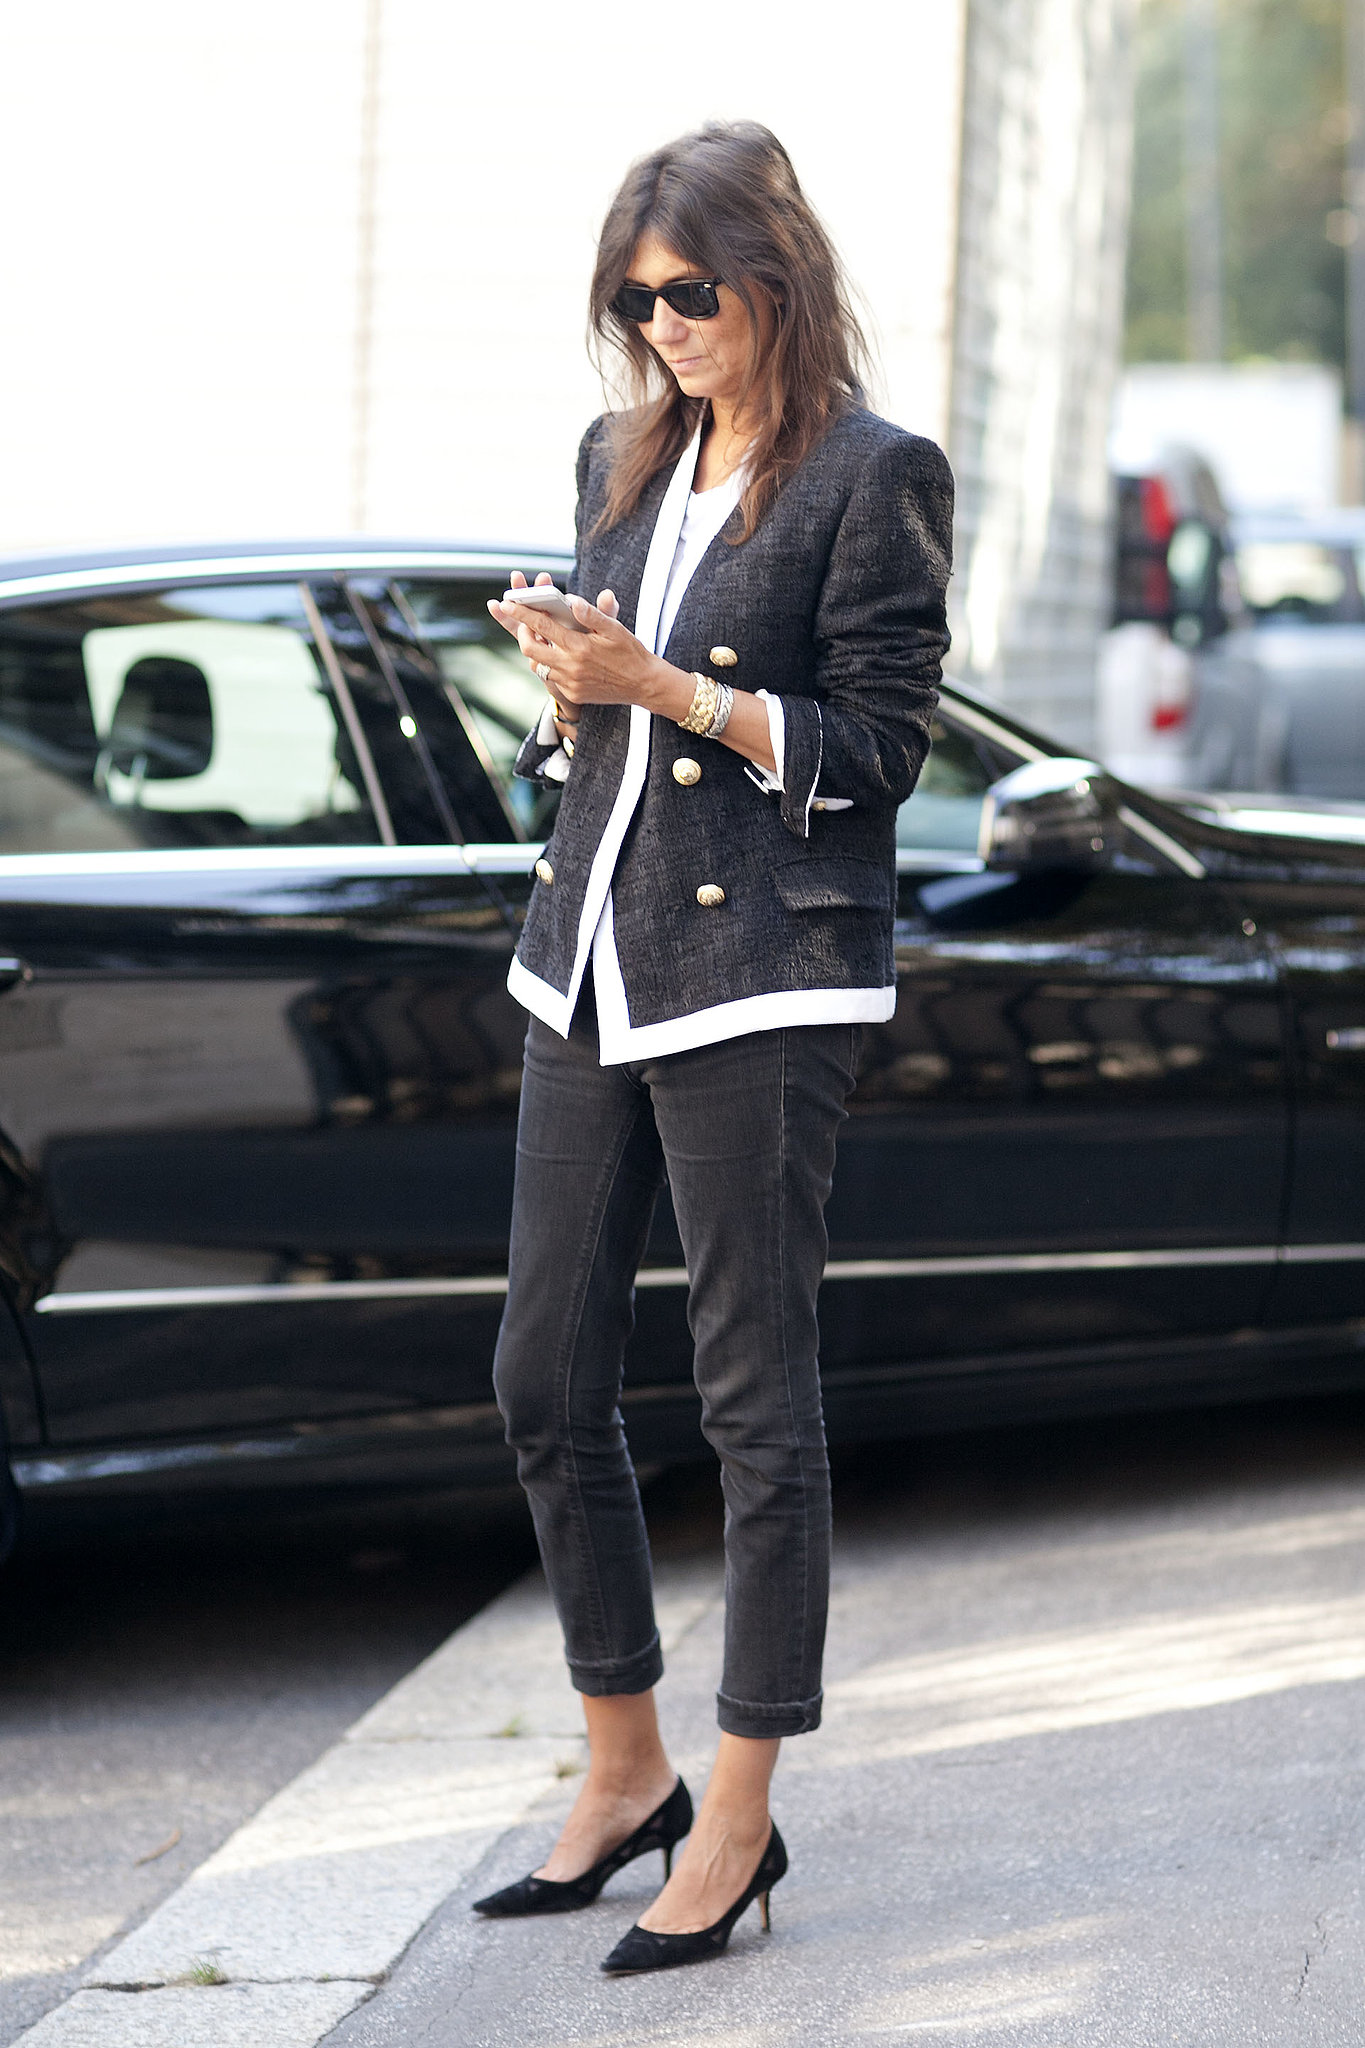 Emmanuelle Alt perfected Parisian chic on the streets of Milan.